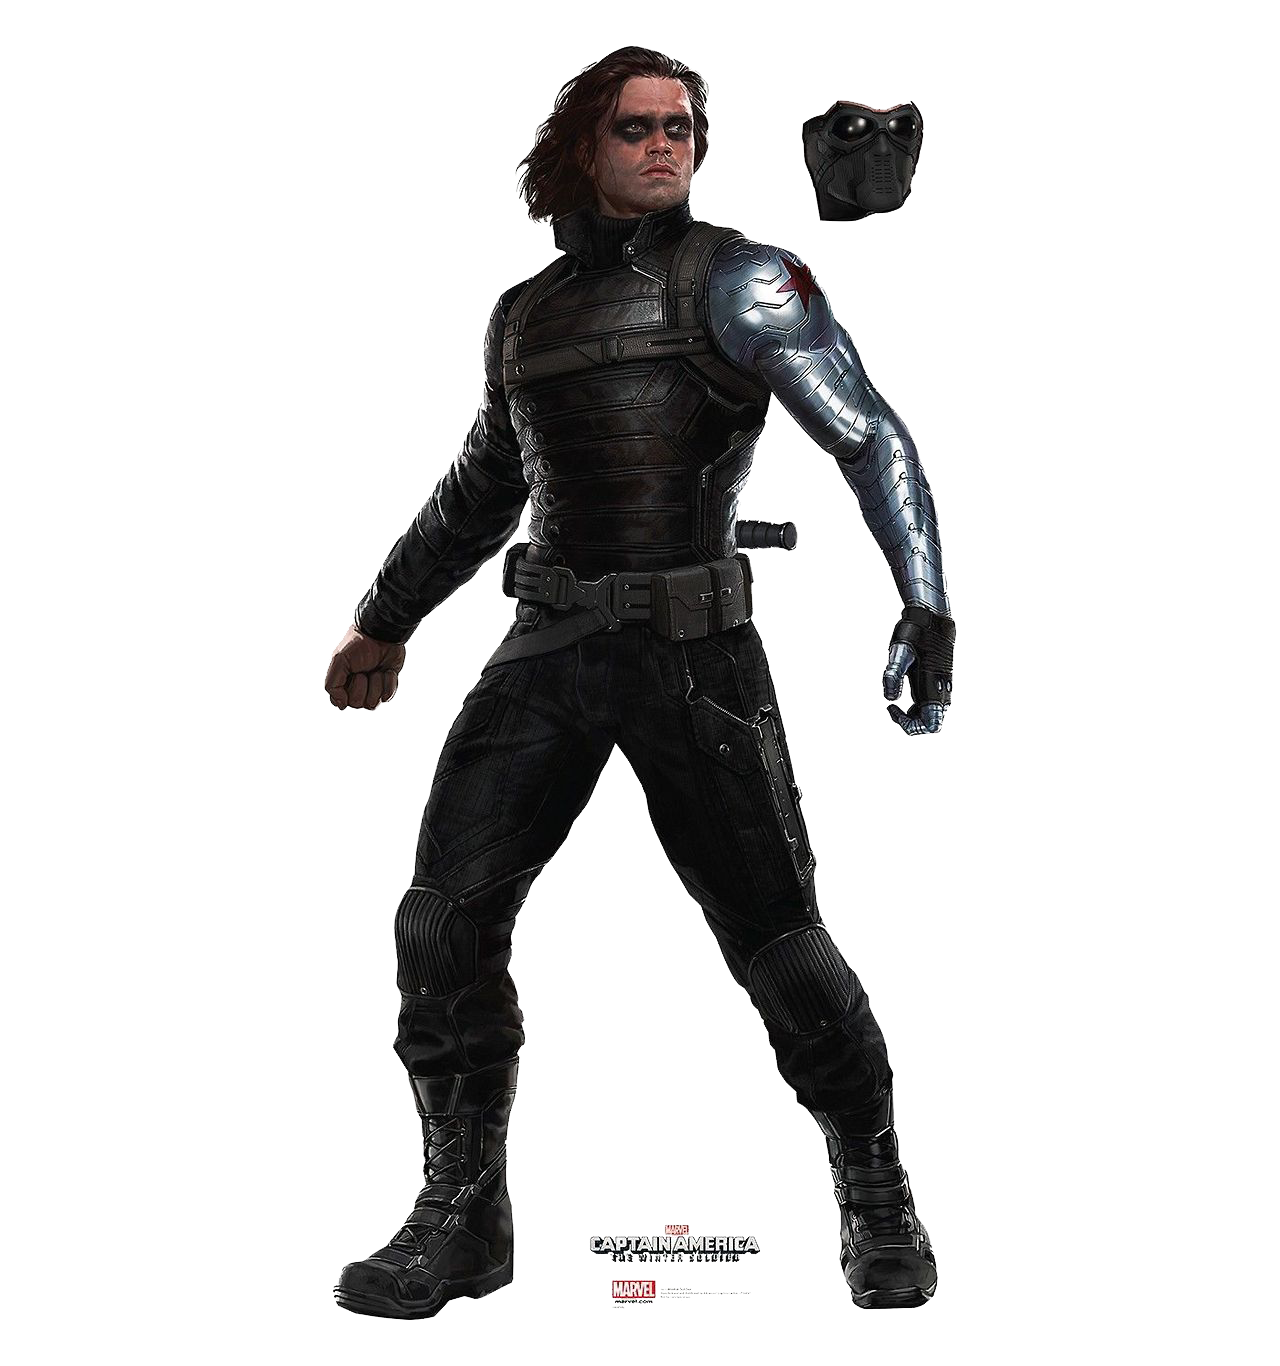 Winter soldier png. Bucky transparent image mart